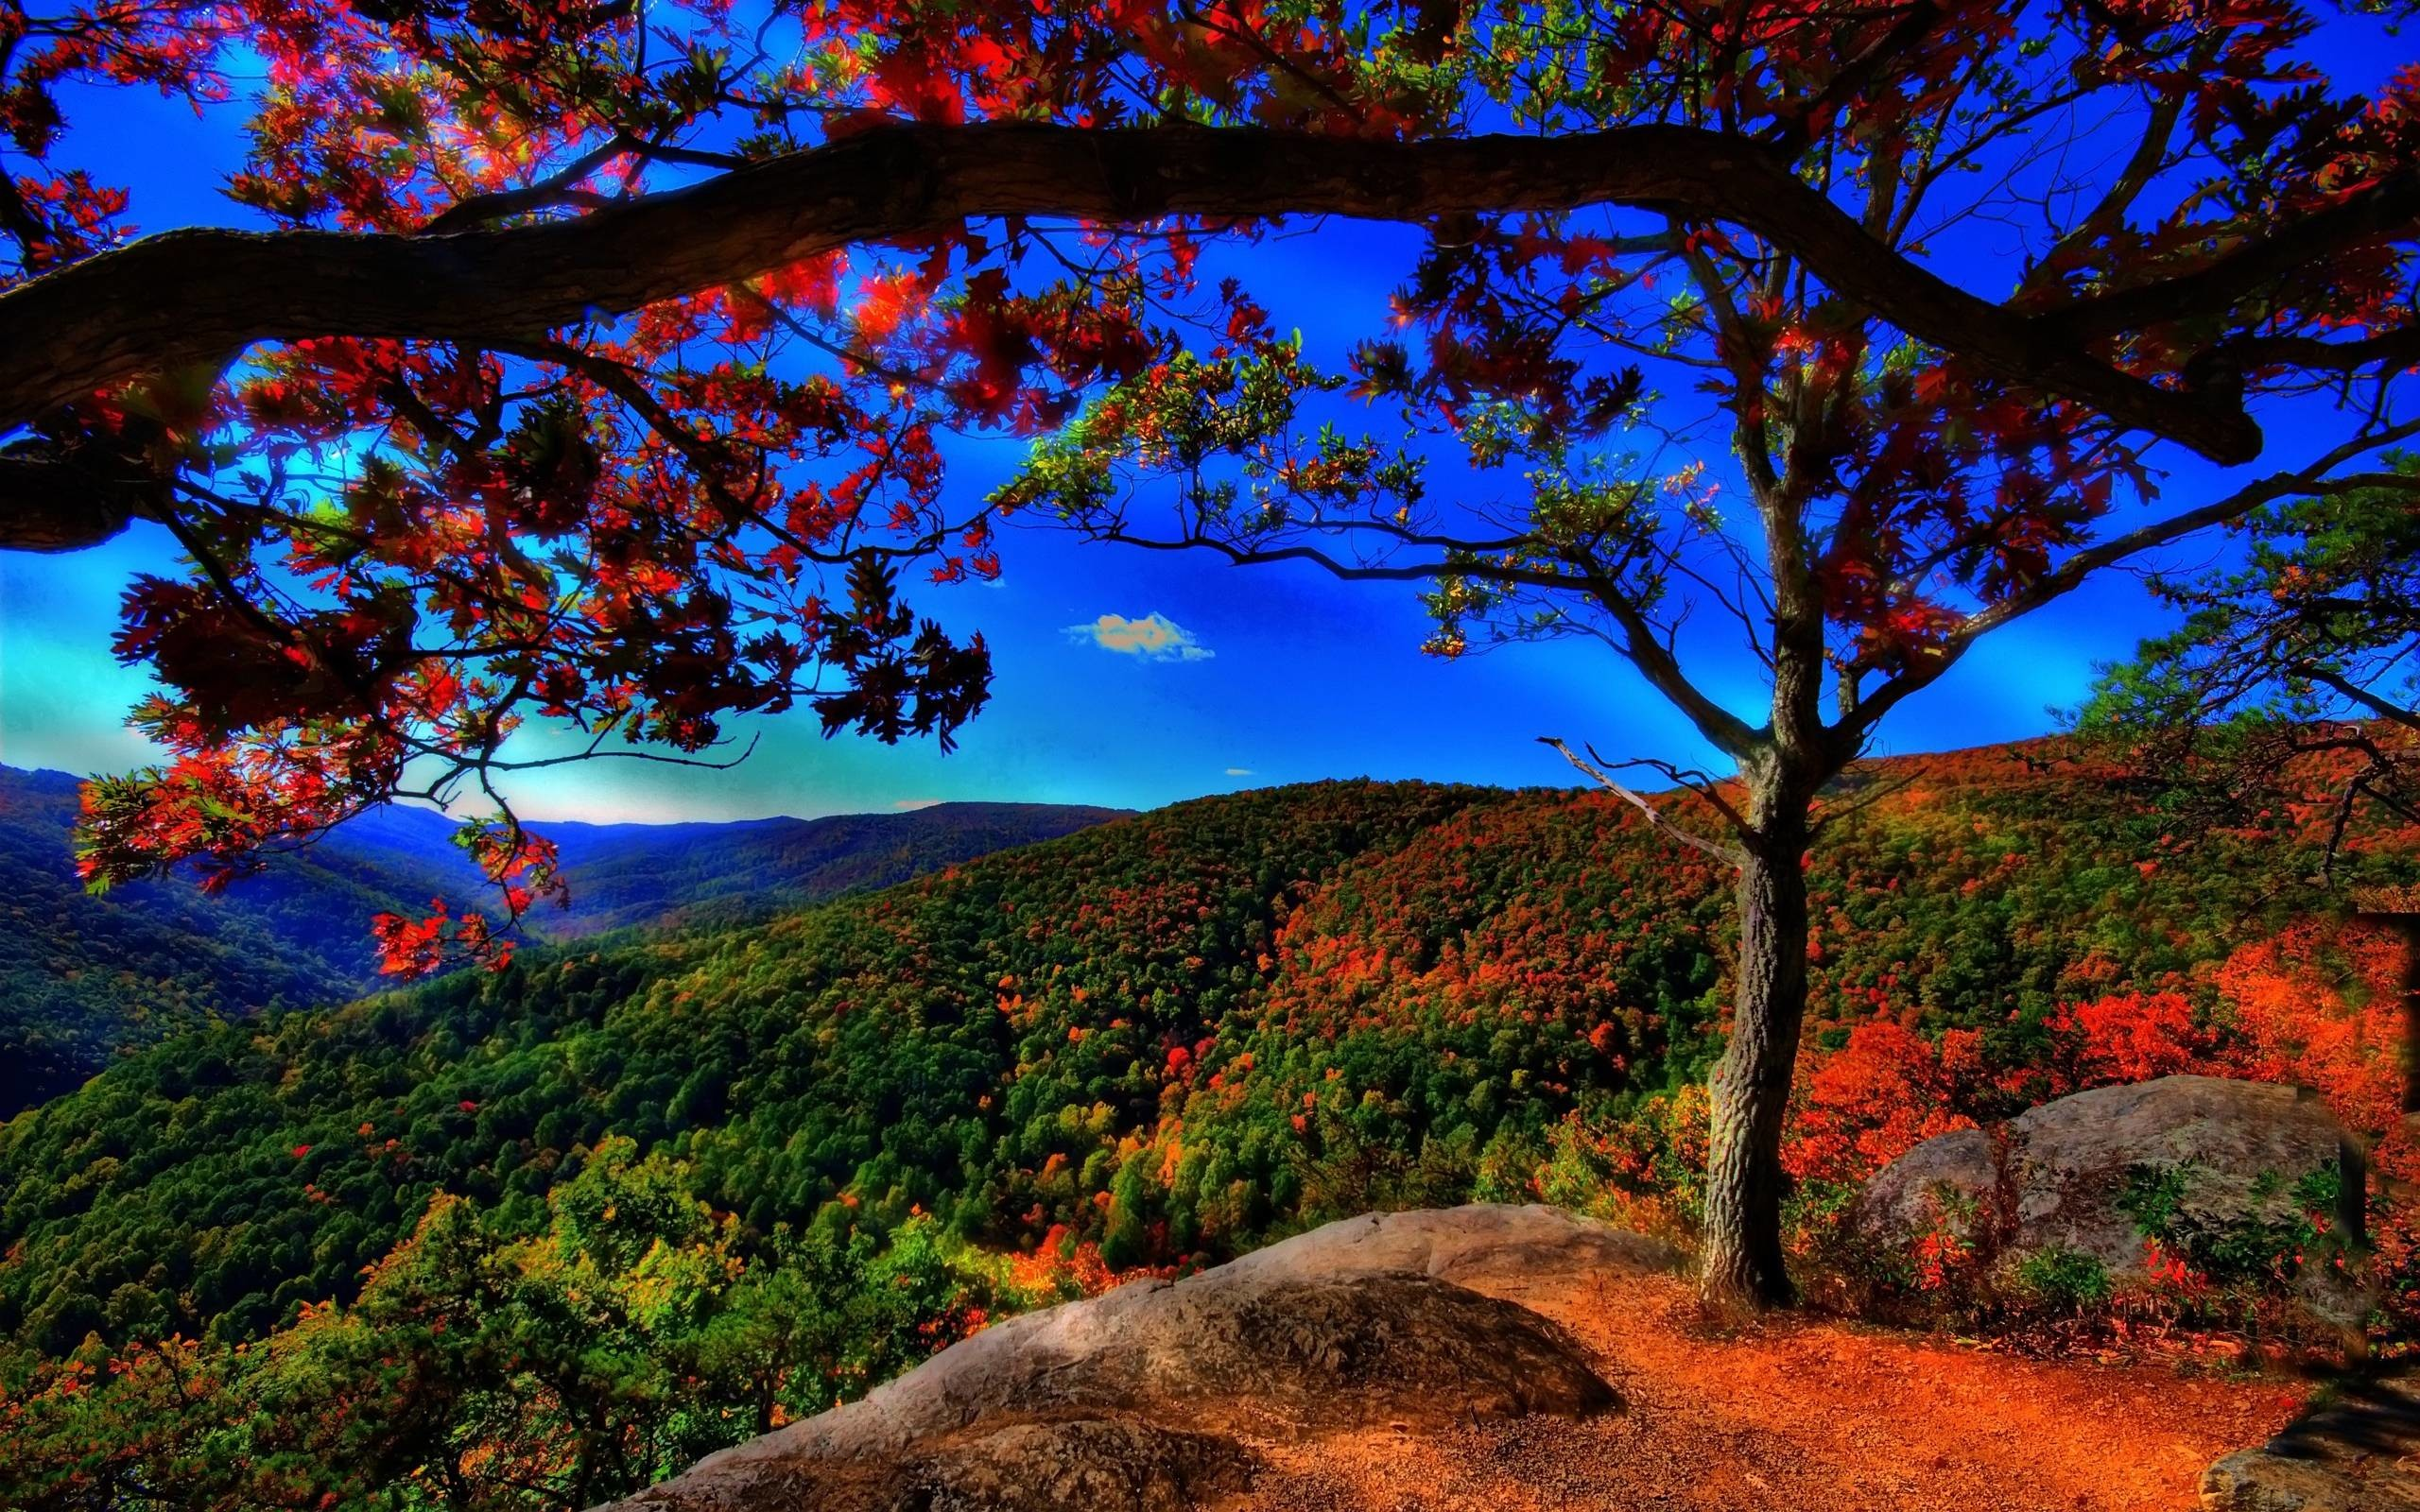 2560x1600 autumn free wallpaper autumn landscape - flipped | Images And ..